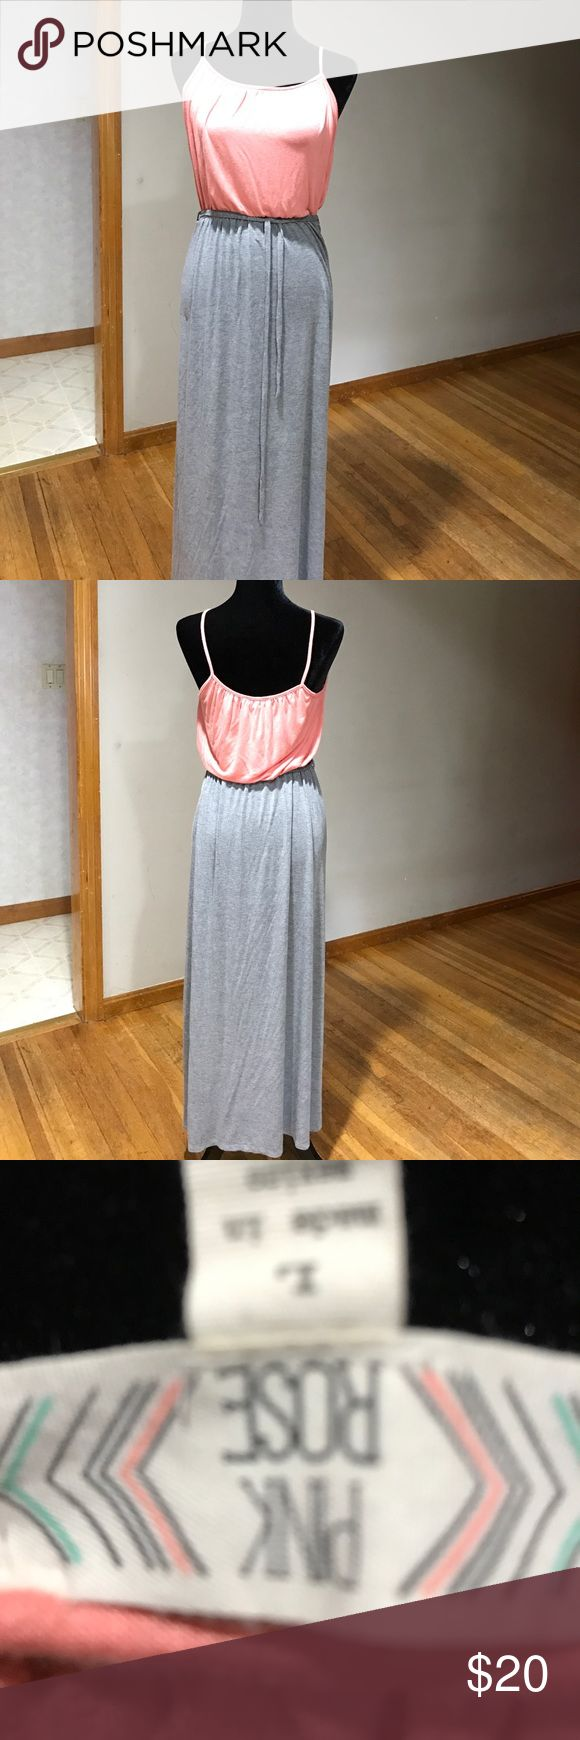 Pink Rose gray & coral maxi dress Pink Rose gray & coral maxi dress. Really good condition with a gray tie around the waist. Very soft & comfortable. Pink Rose Dresses Maxi